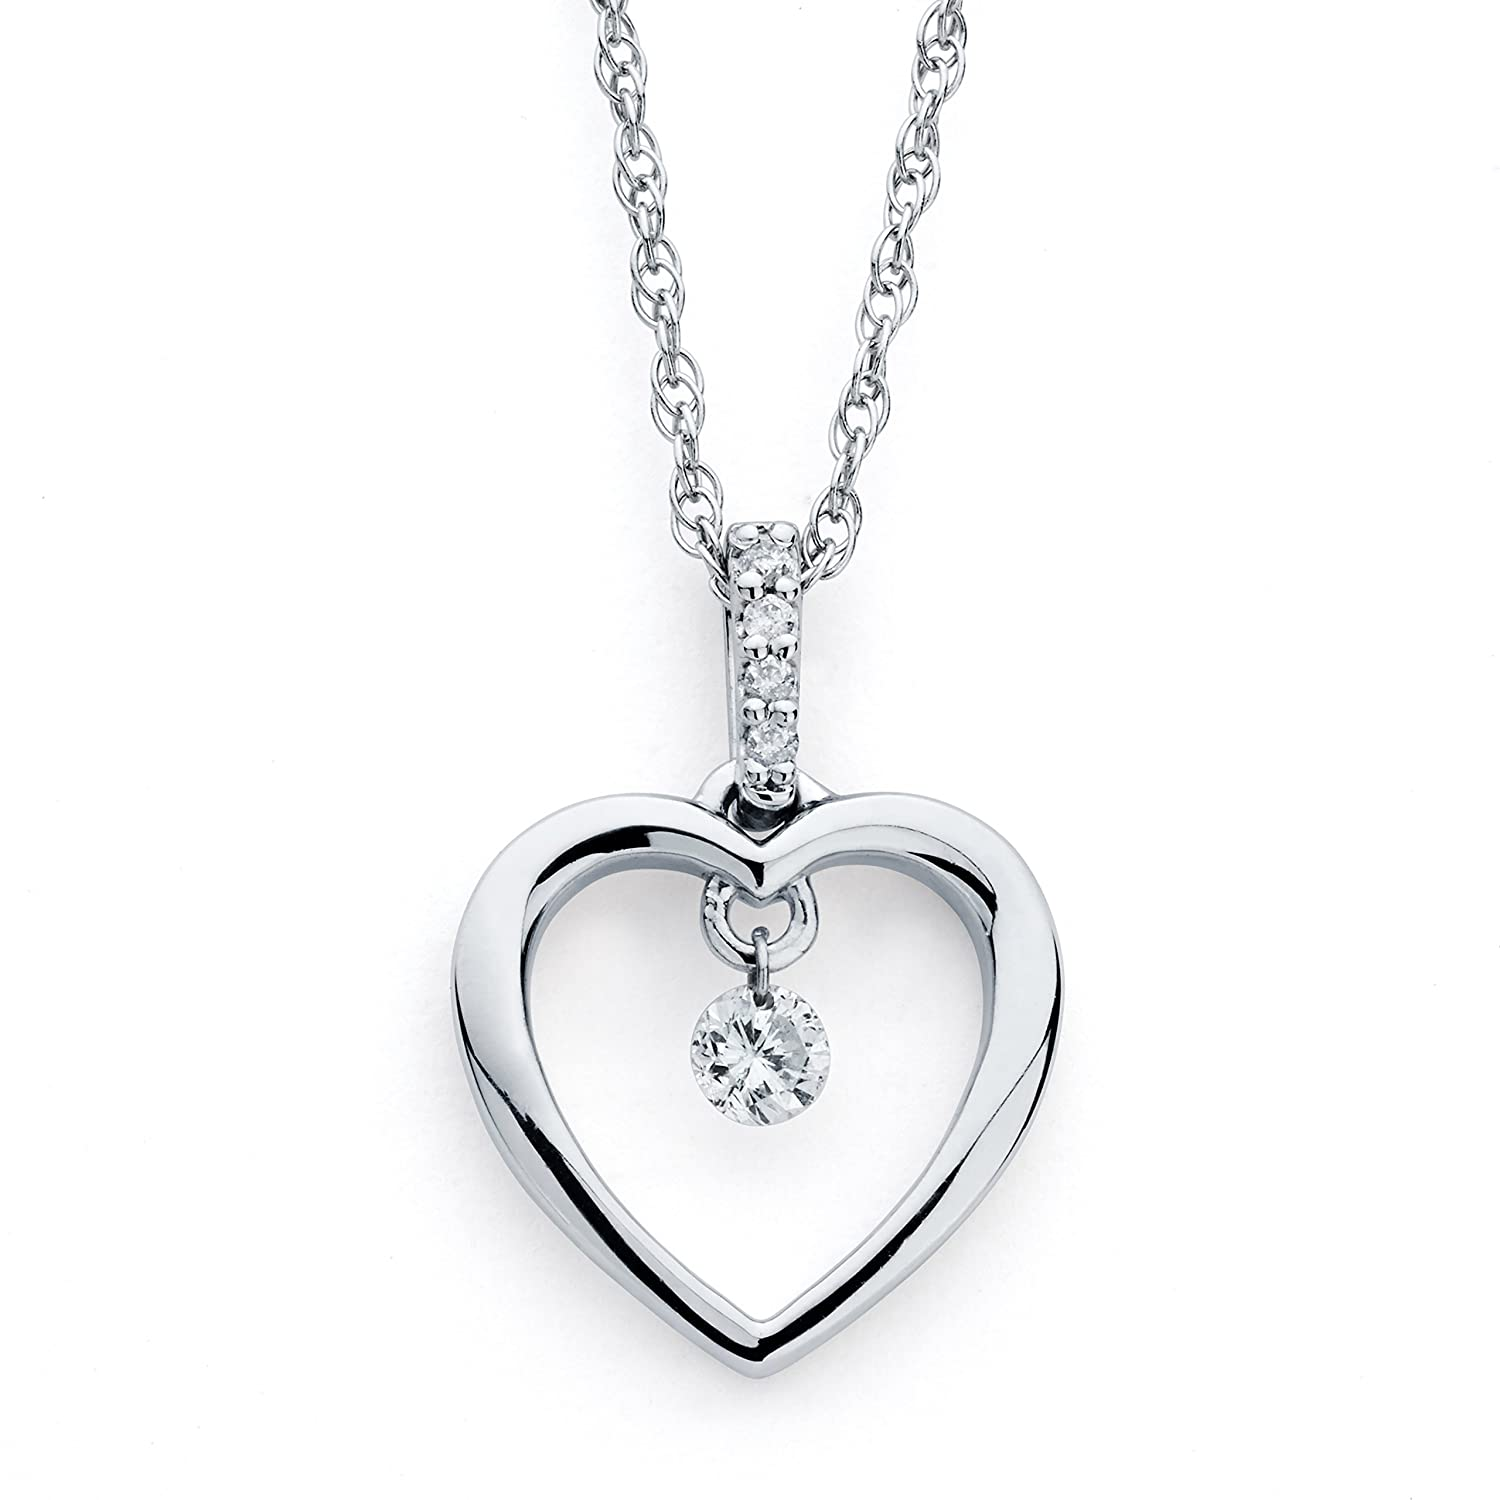 925 sterling silver 10 cttw floating diamond heart pendant 925 sterling silver 10 cttw floating diamond heart pendant necklace with 18 chain aloadofball Images